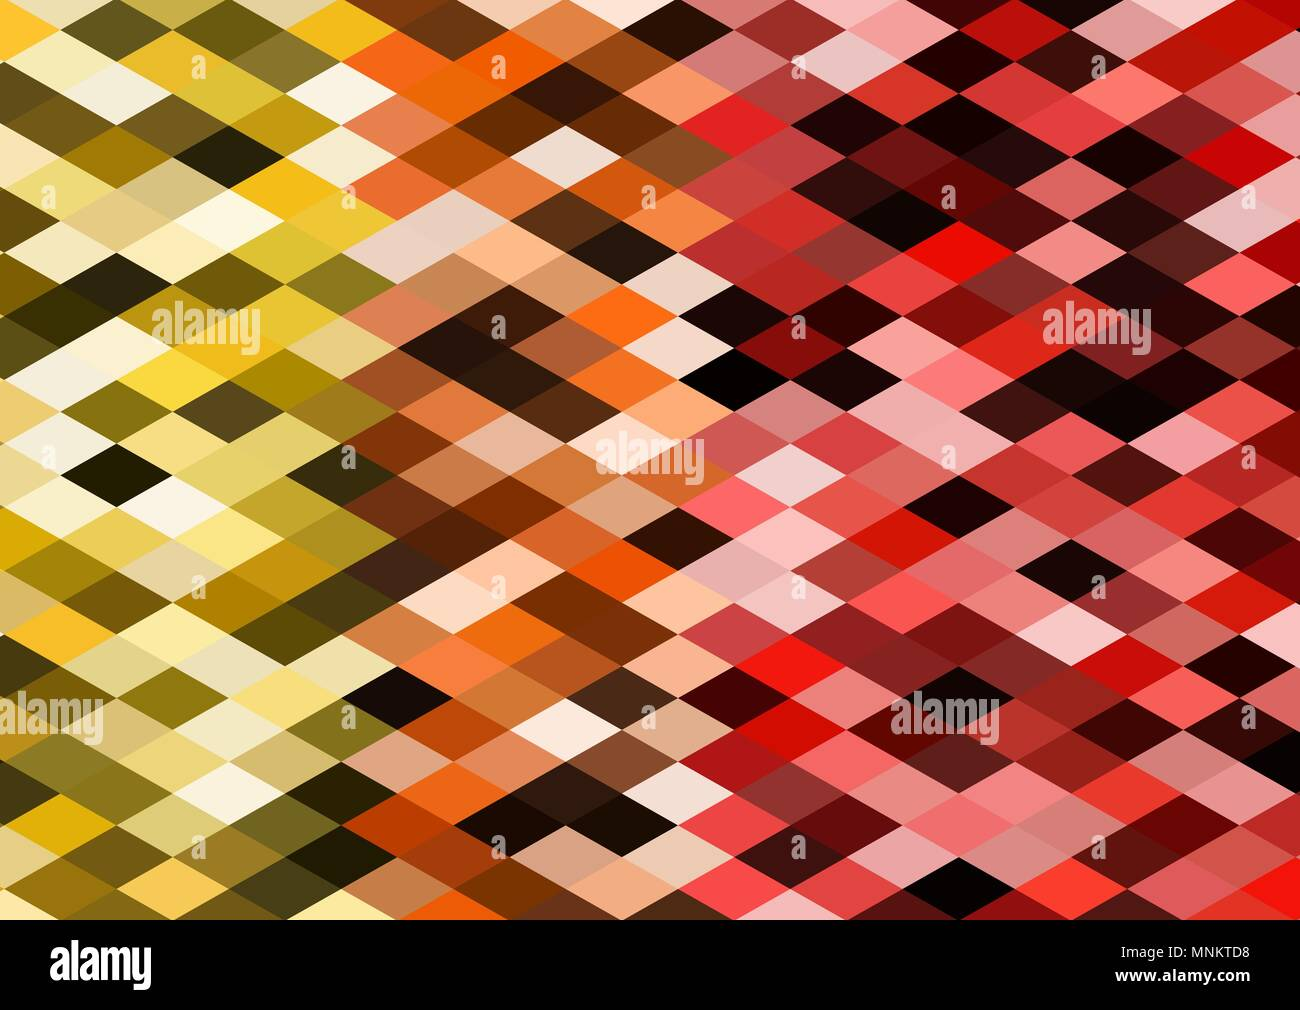 Background with colorful geometric elements. Vector illustration. - Stock Vector